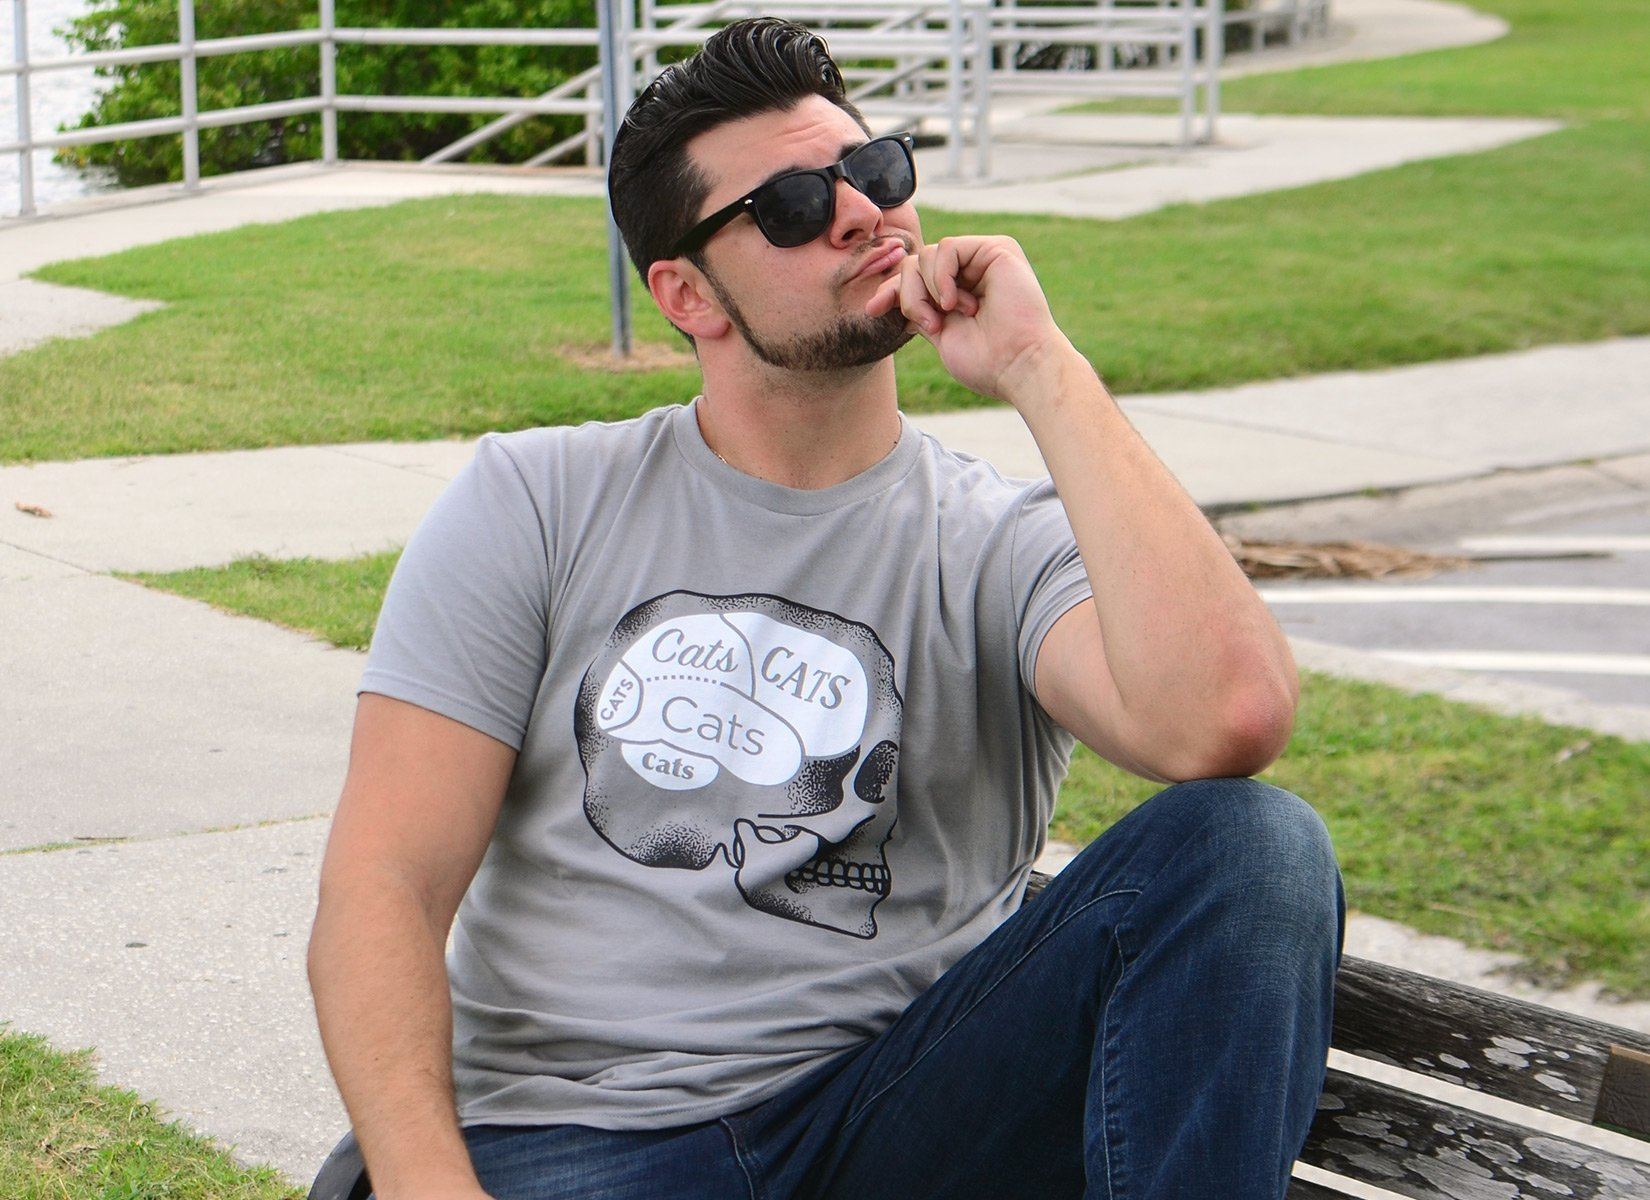 Cats On The Brain on Mens T-Shirt